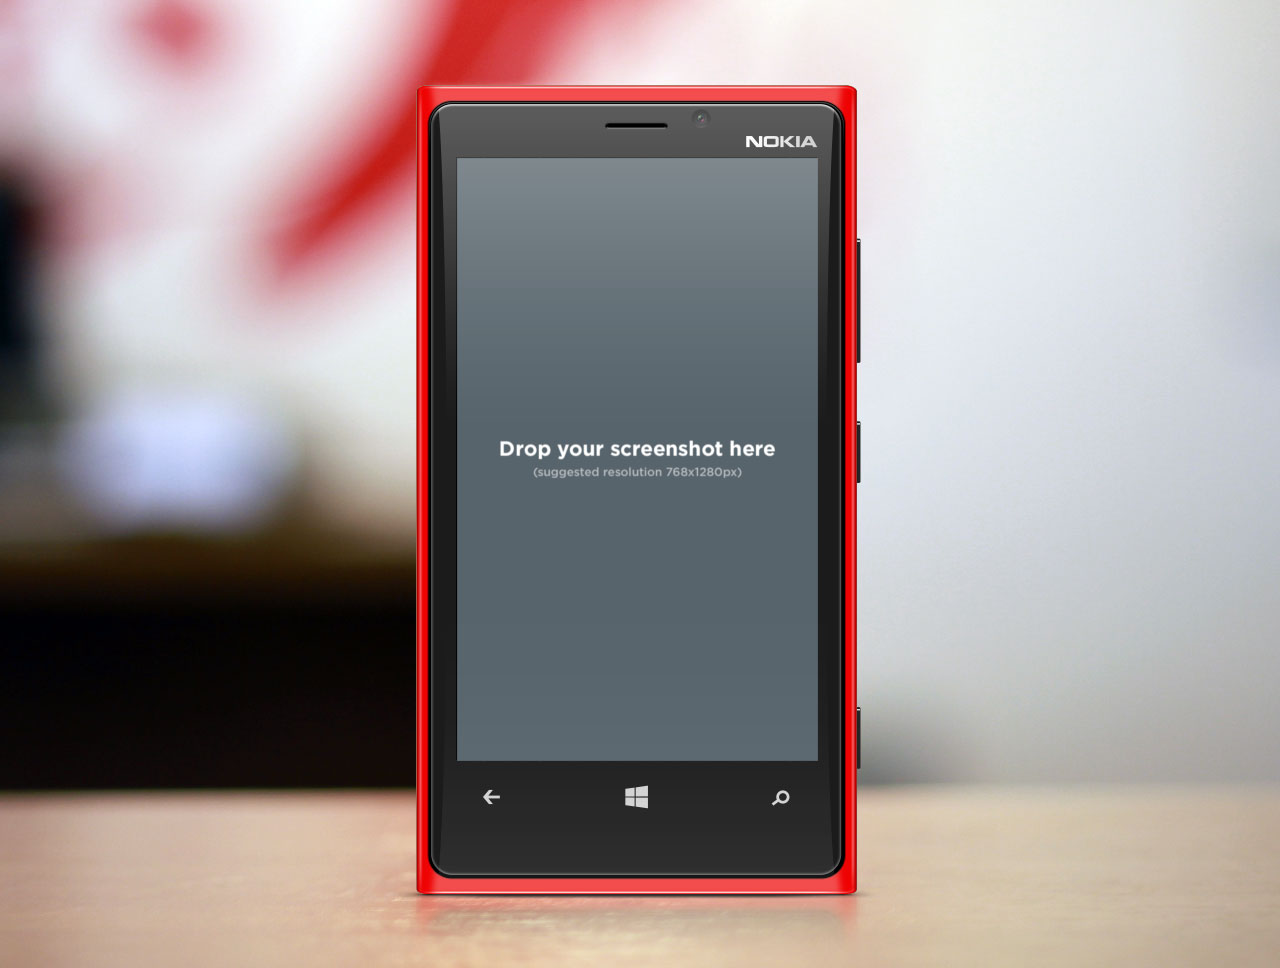 Red Windows Nokia Smartphone Mockup Product Shot